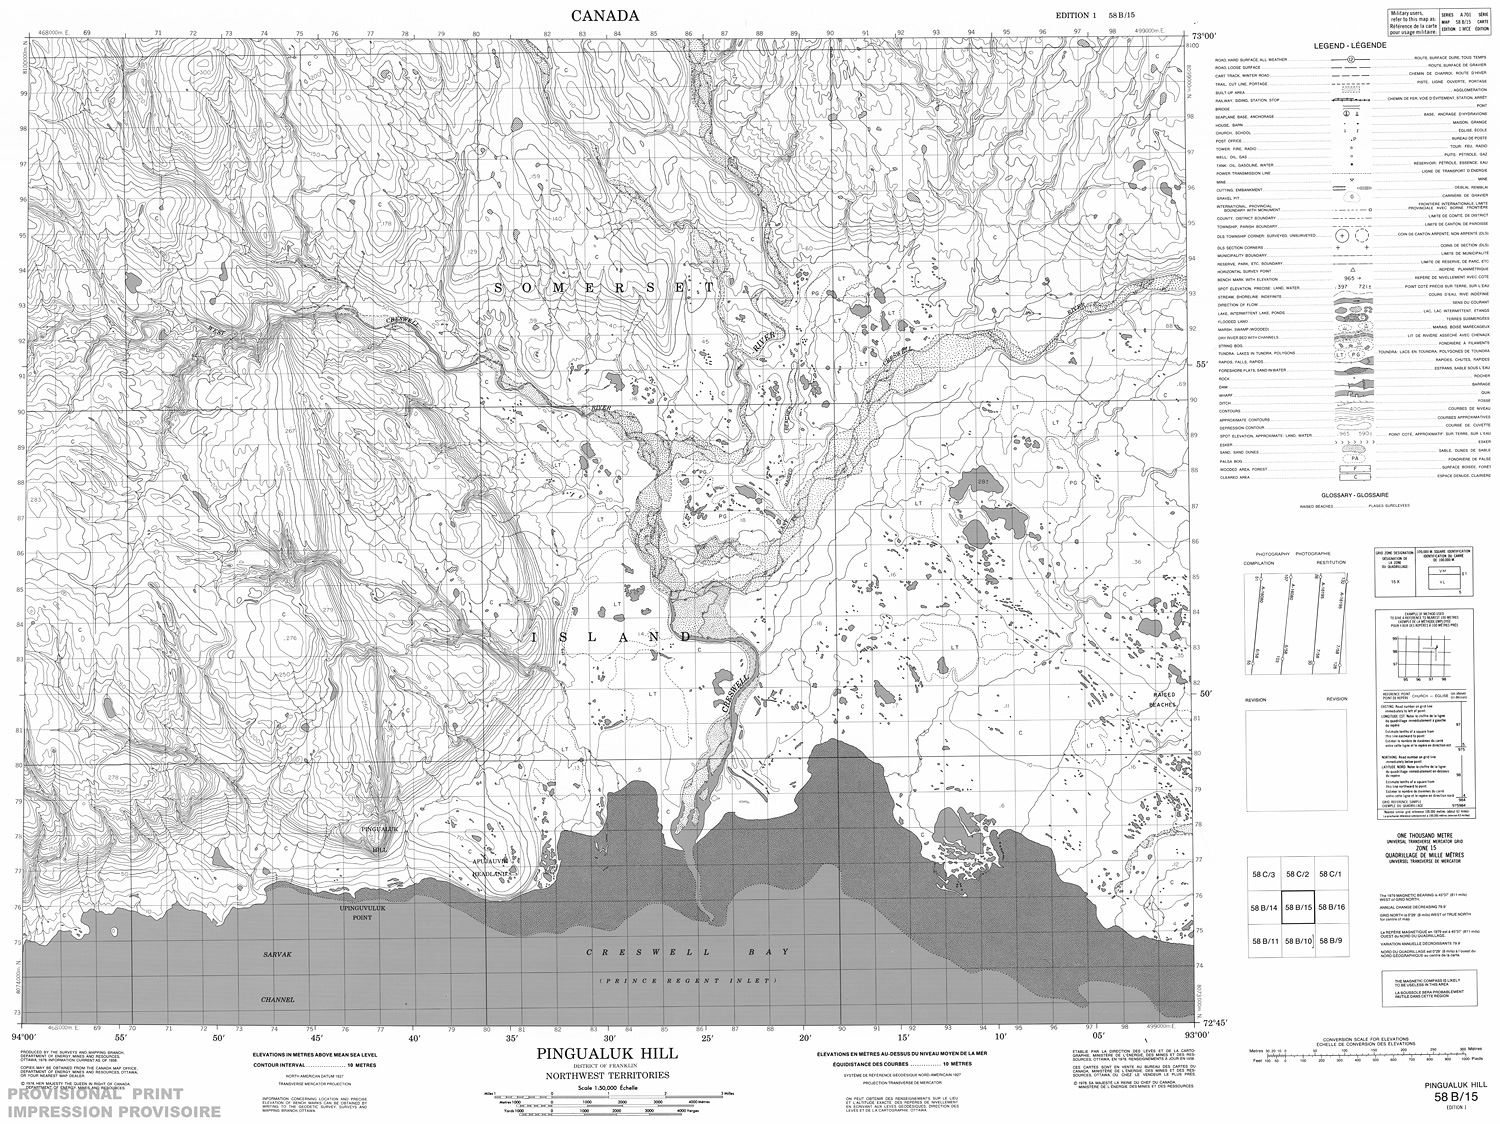 Hill Topographic Map.058b15 Pingualuk Hill Topographic Map